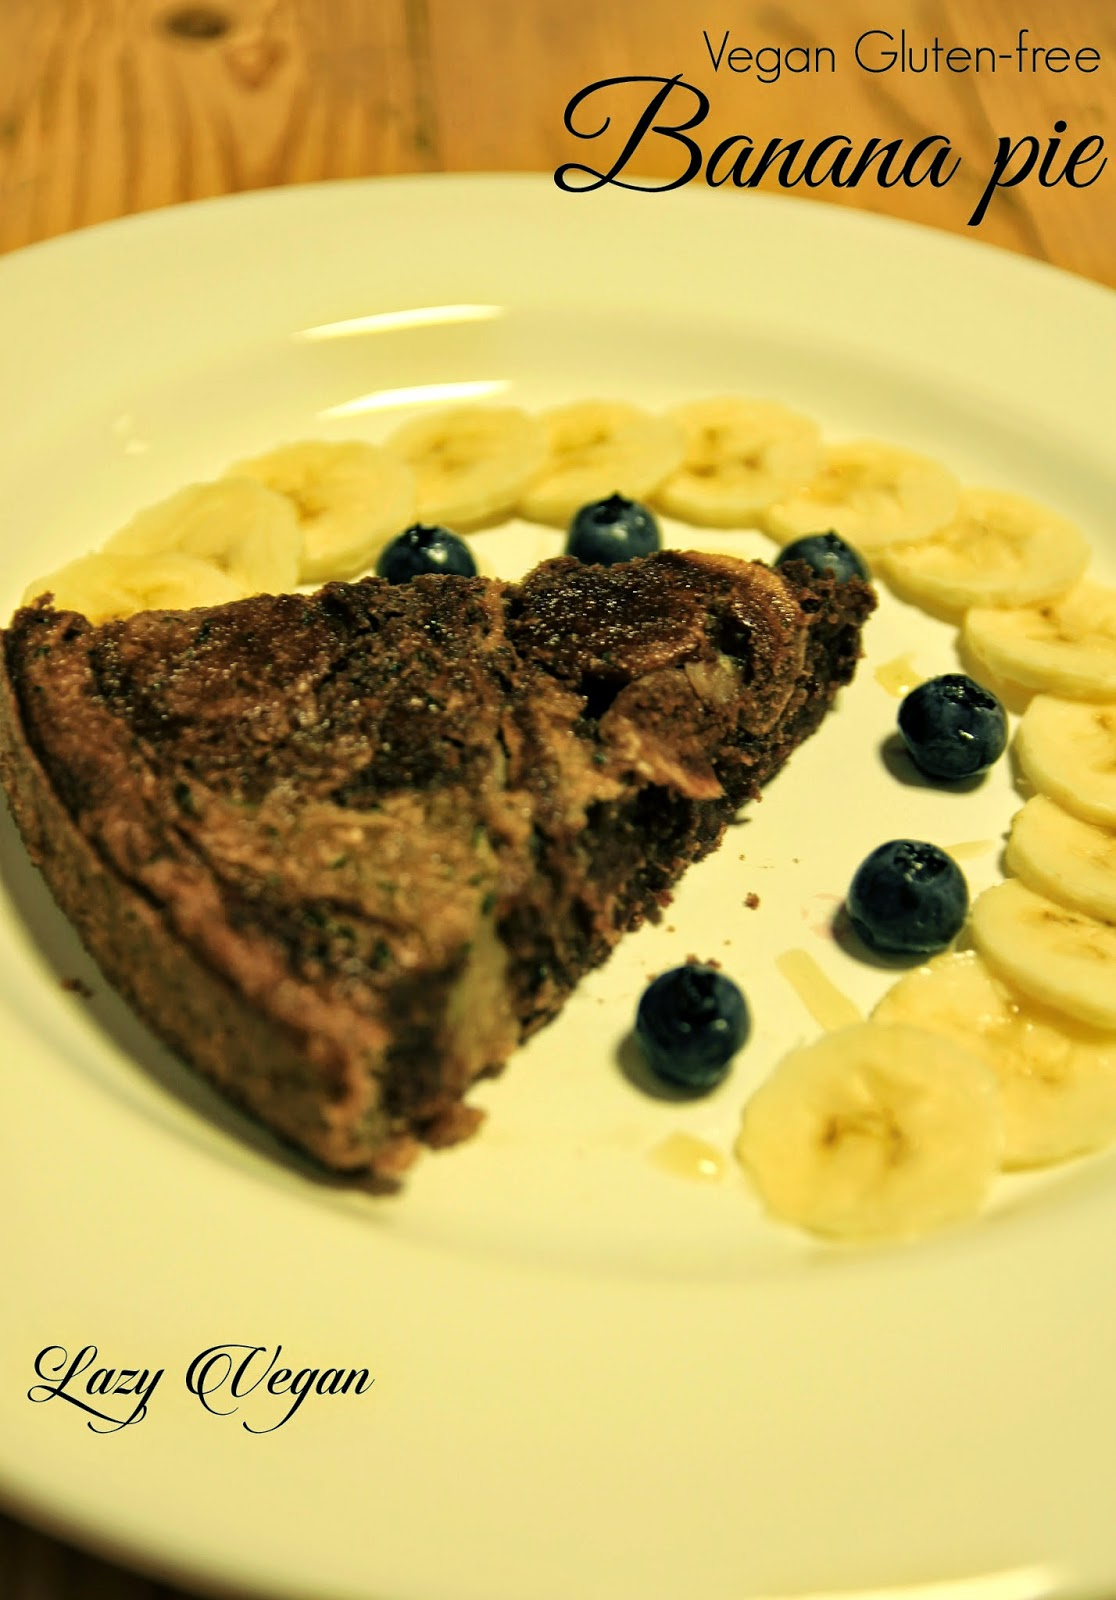 Banana, Pie, Dessert, Sweets, Chocolate, Cacao, Cocoa, Gluten-free, Lazy vegan recipes